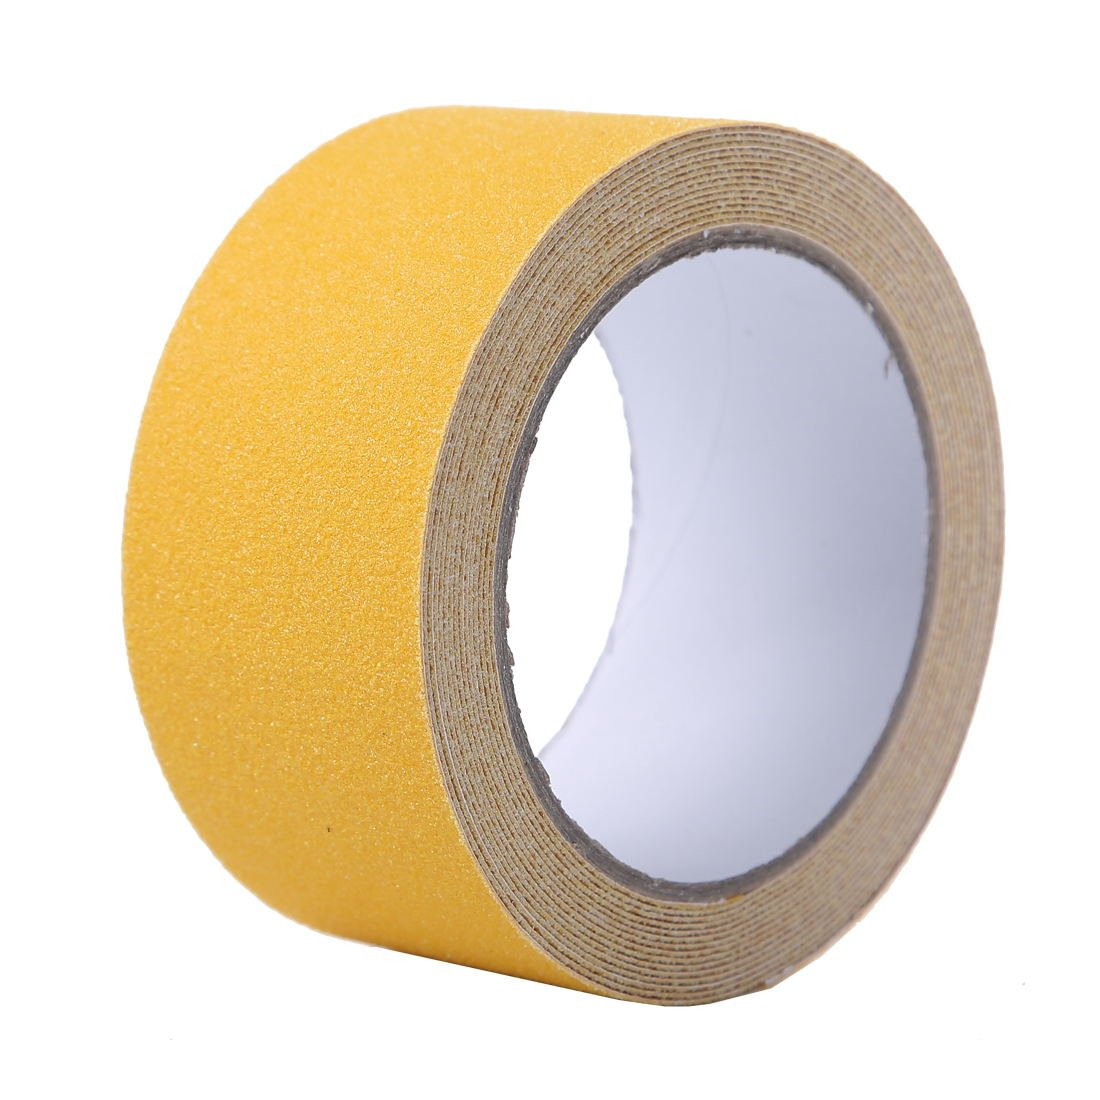 EONBON Yellow Anti Slip Tape, Non Slip Stair Tape, Anti Skid Tape Outdoor , Safety Grip Tape For Steps , Tread Tape - 2 inch x 10 Meter (32.8 Feet)